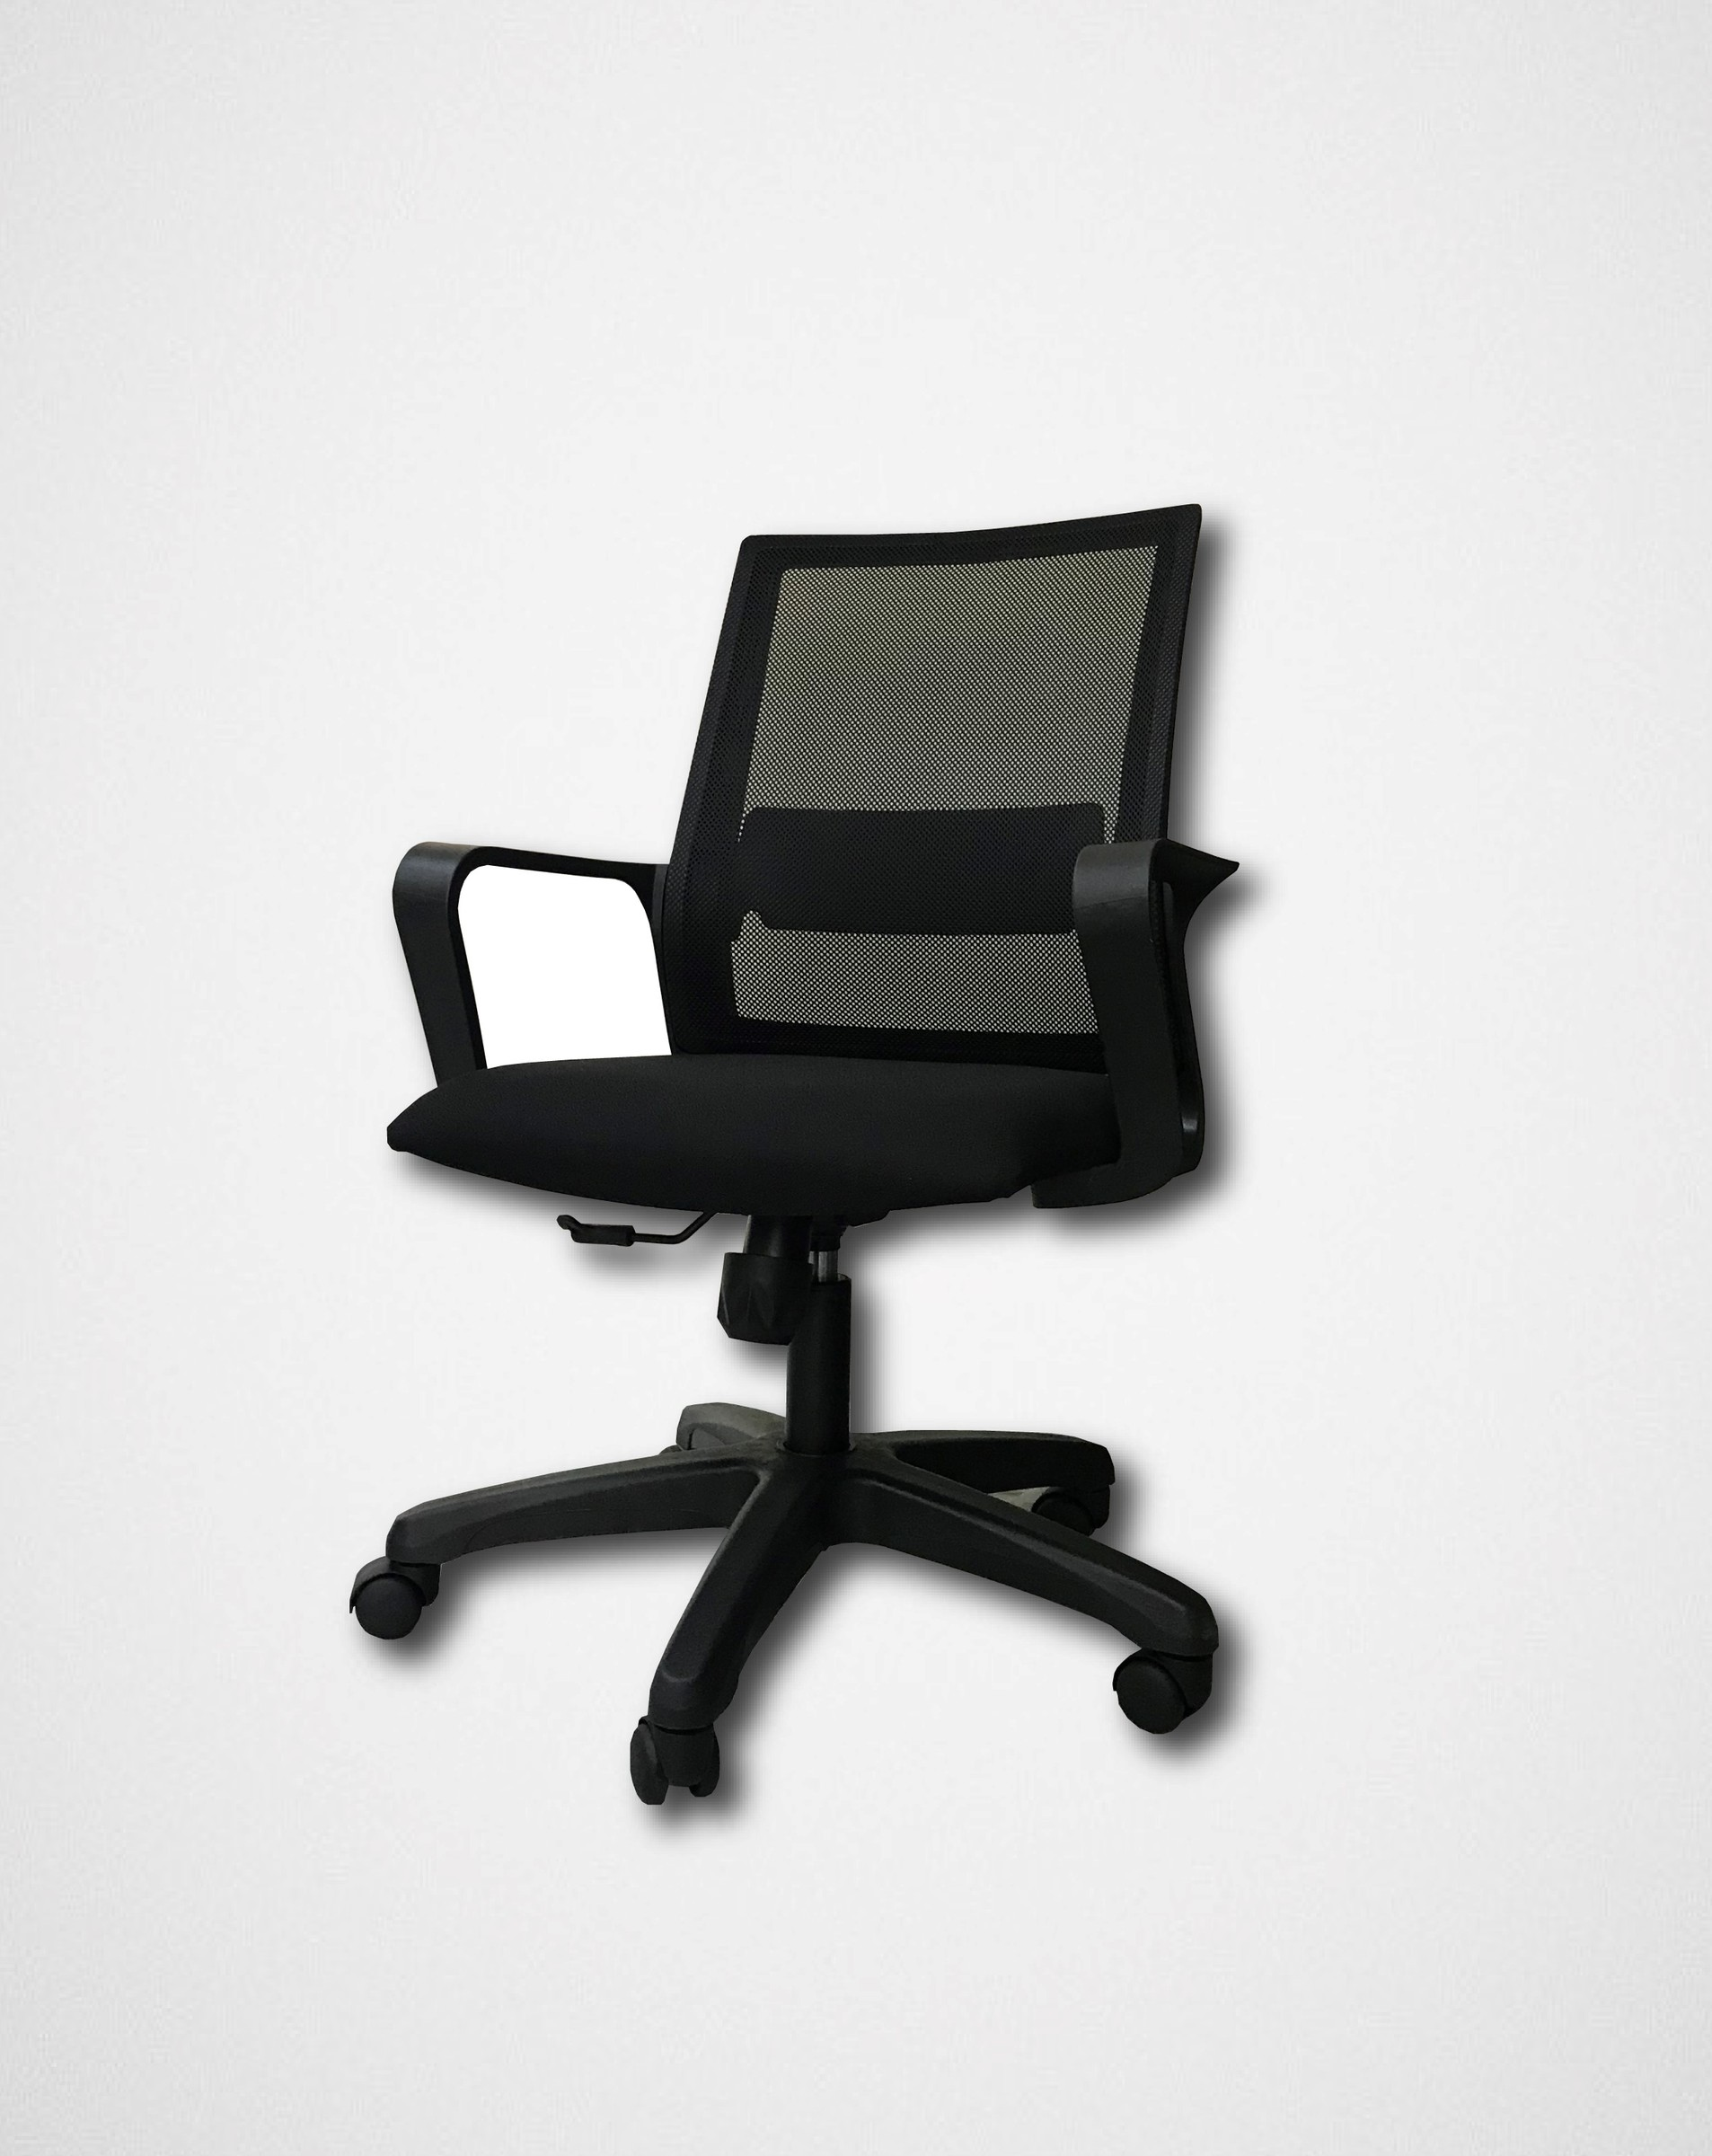 Alterseat |  - Budget Chair Collection